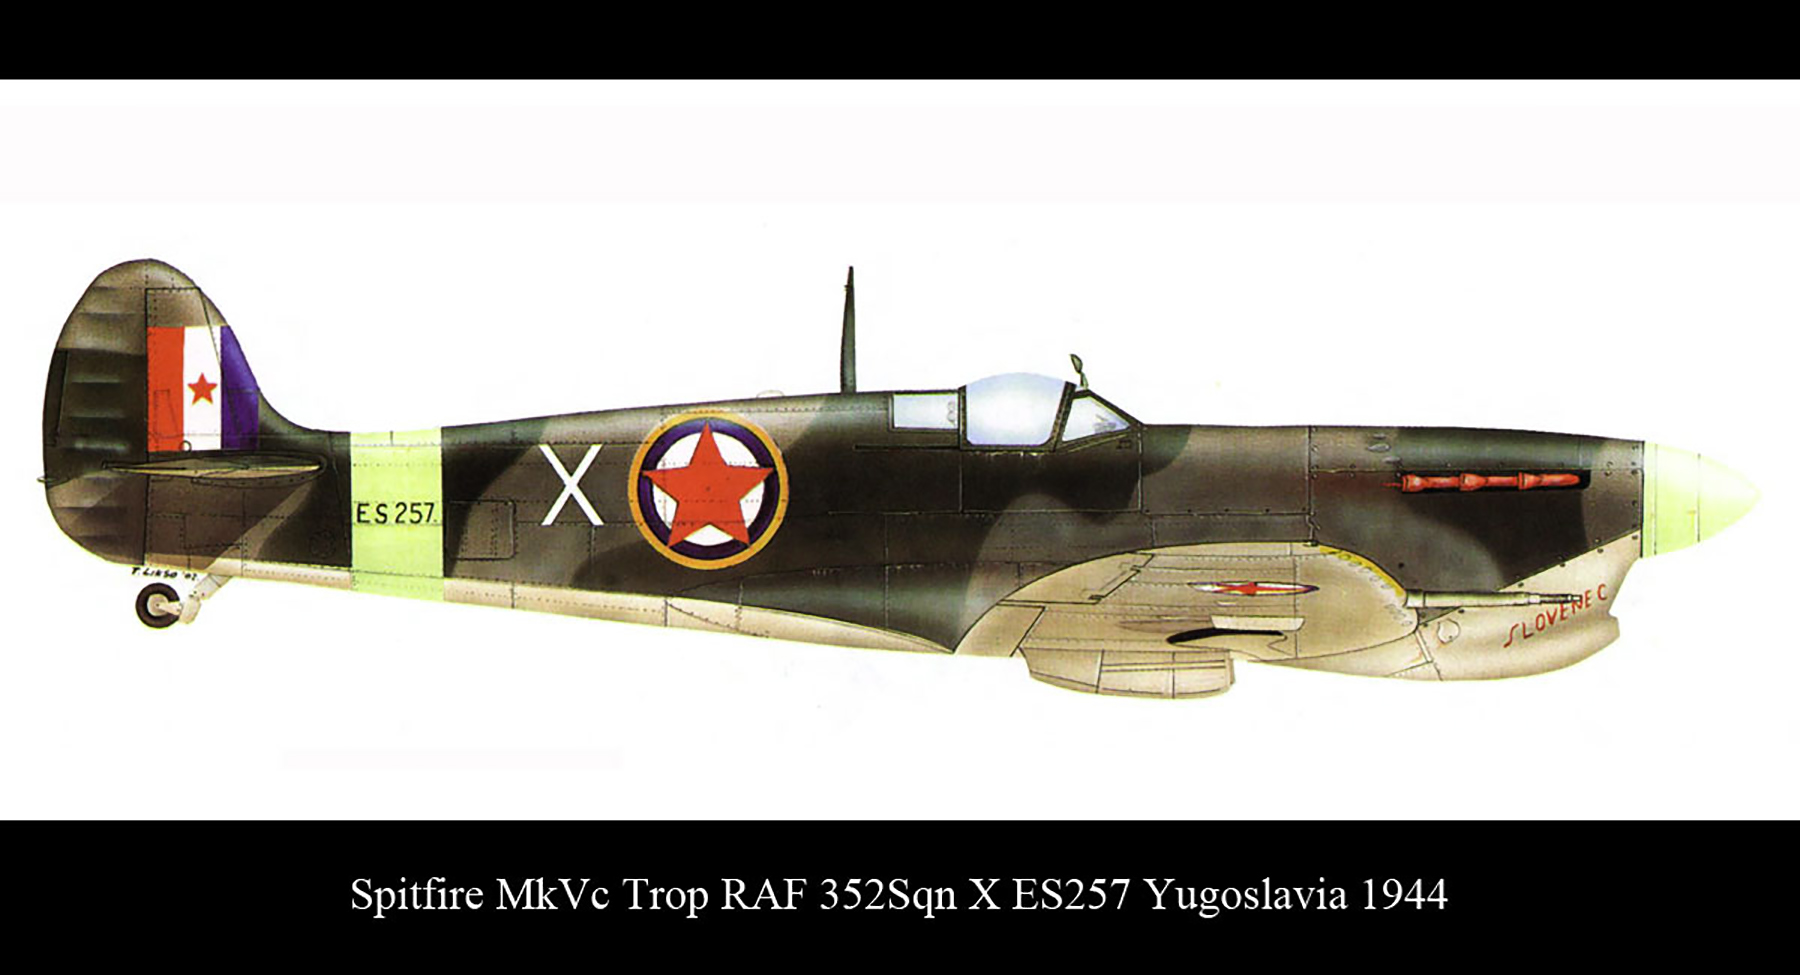 Spitfire MkVcTrop RAF 352Sqn X ES257 Canne Italy 1944 0A